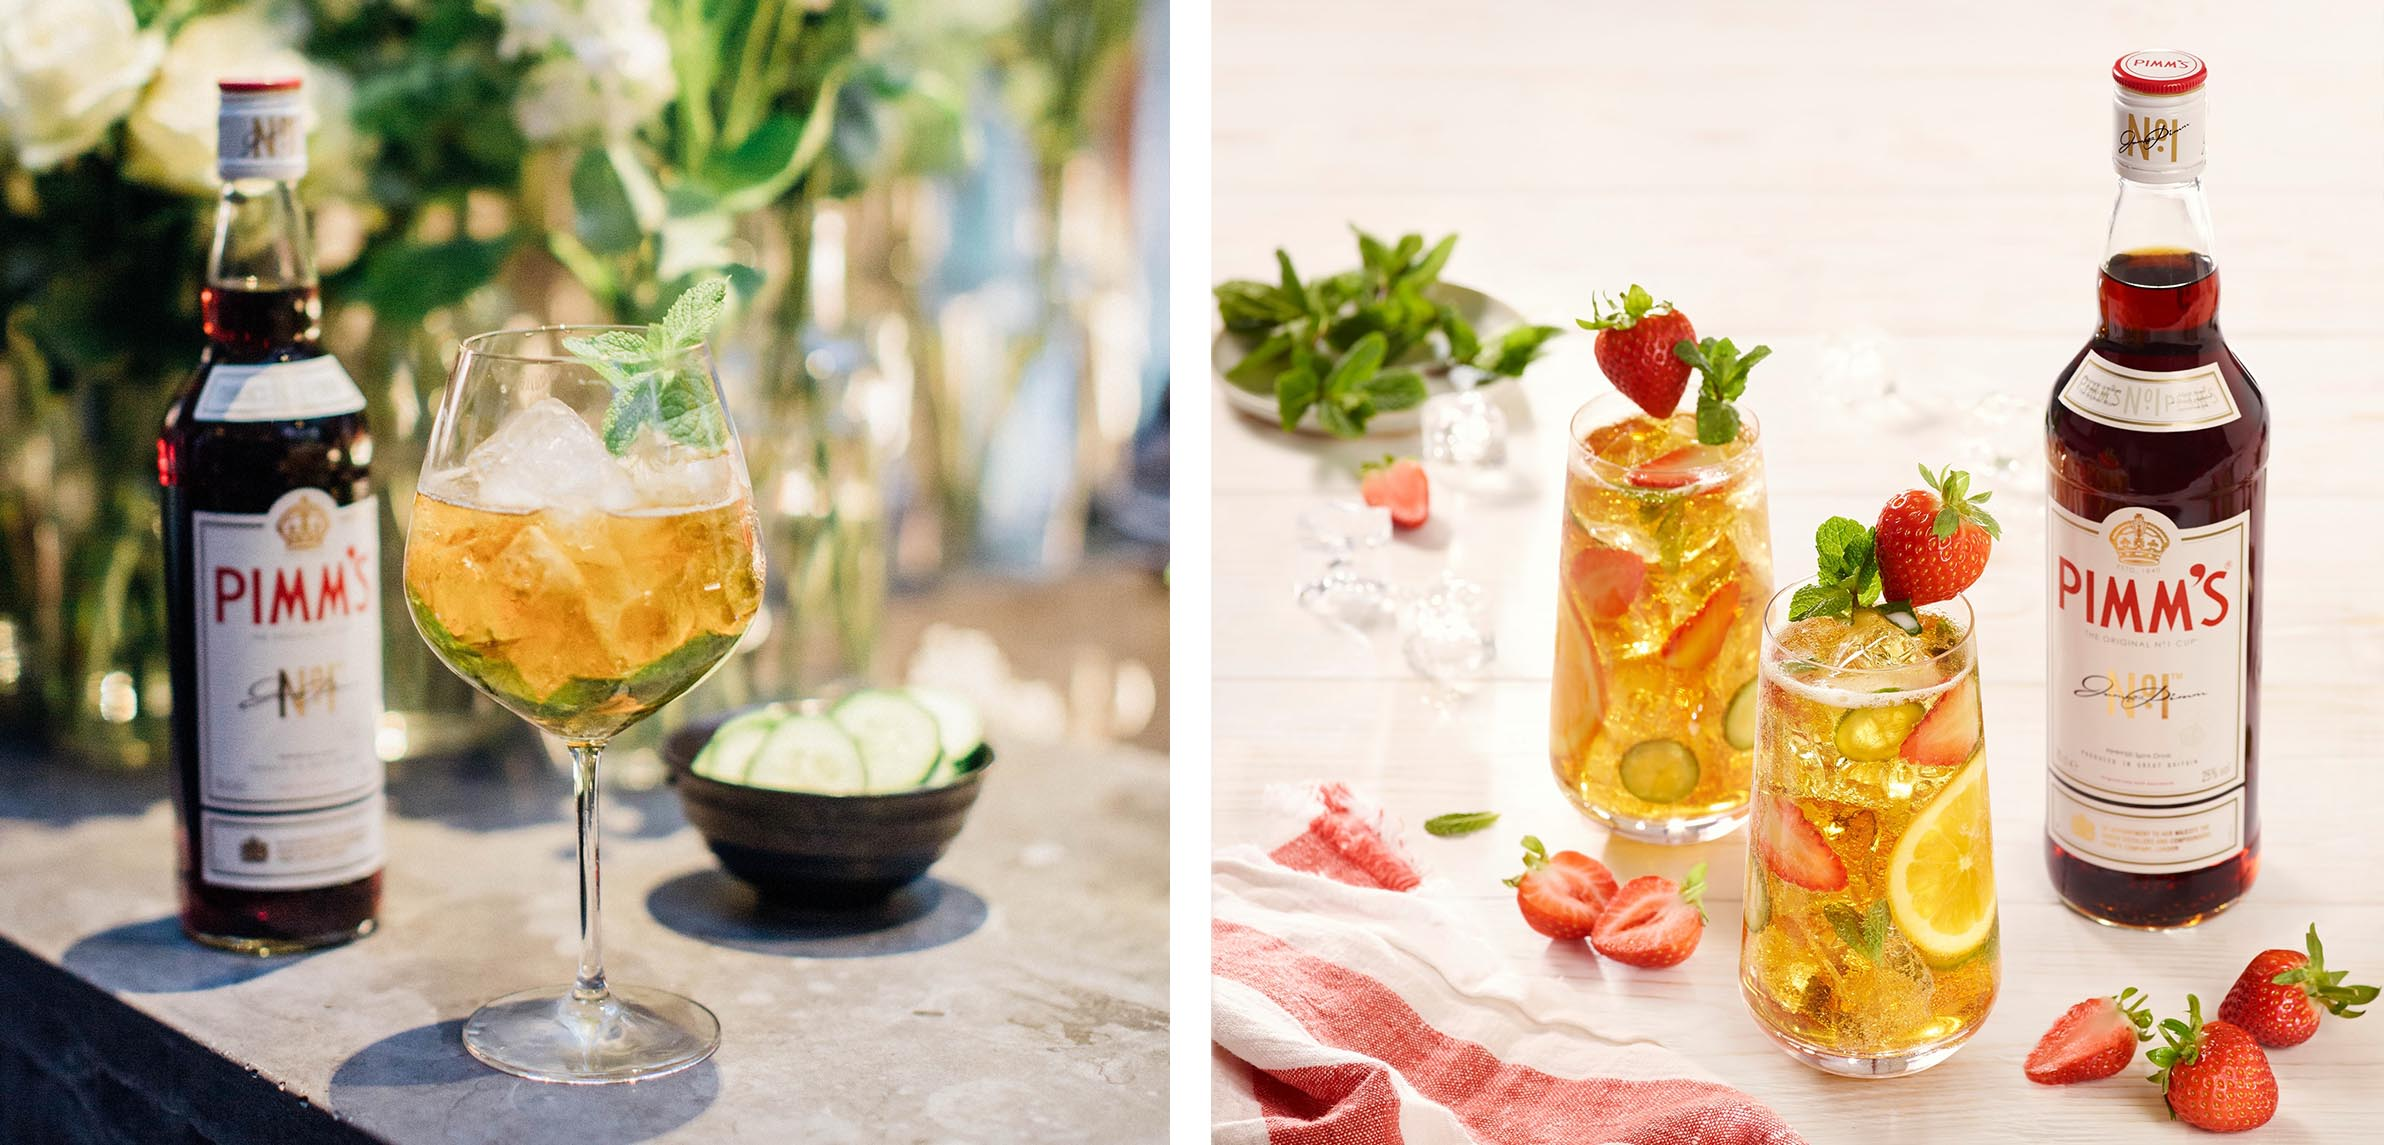 Pimm's No 1 Cup images with glorious drinks